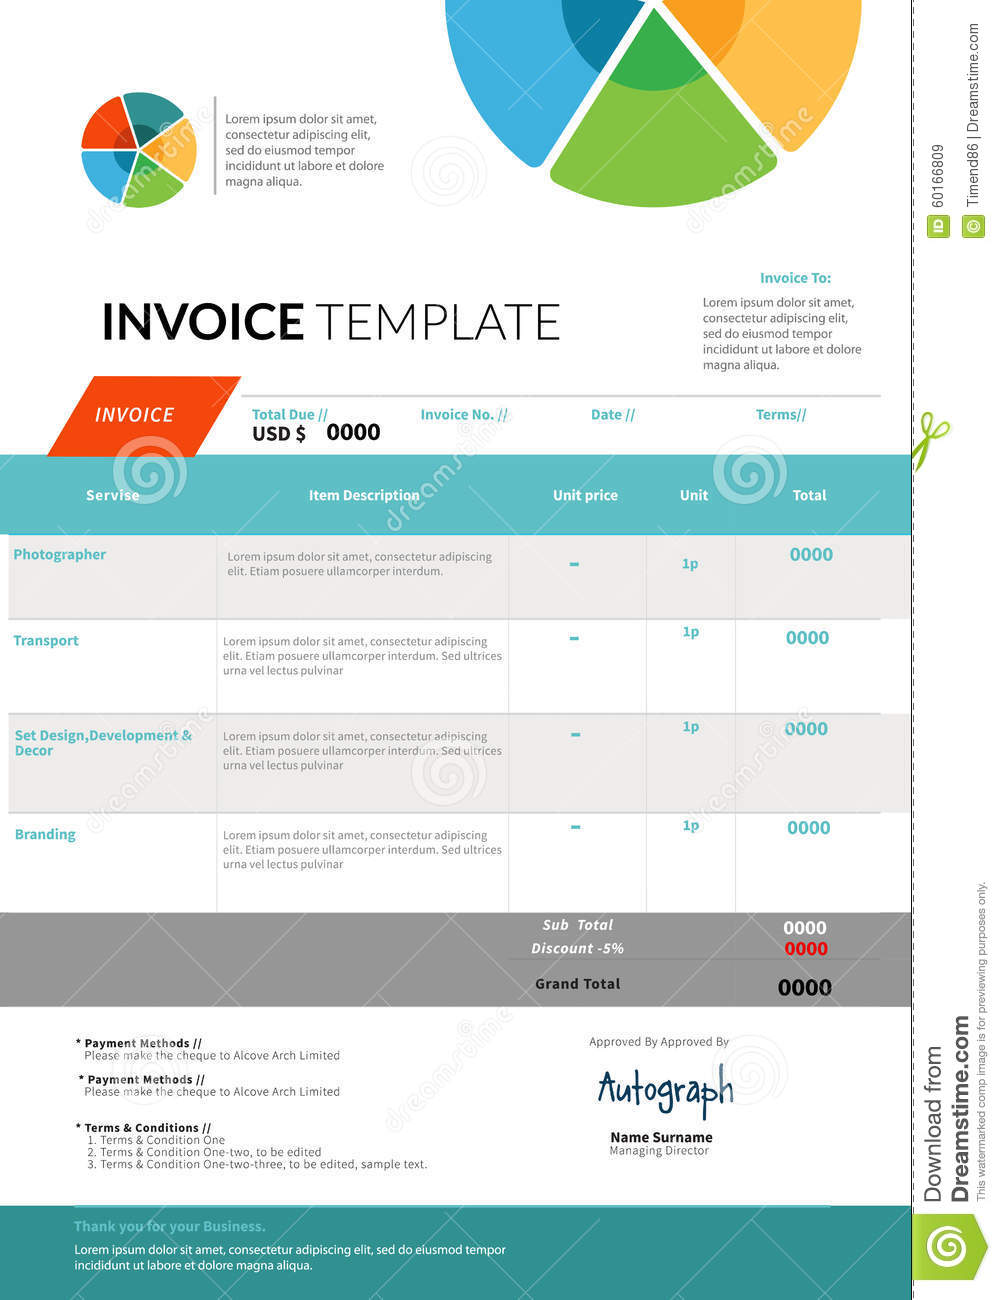 Invoice Template Design Stock Vector Illustration Of Editable - Design invoice template